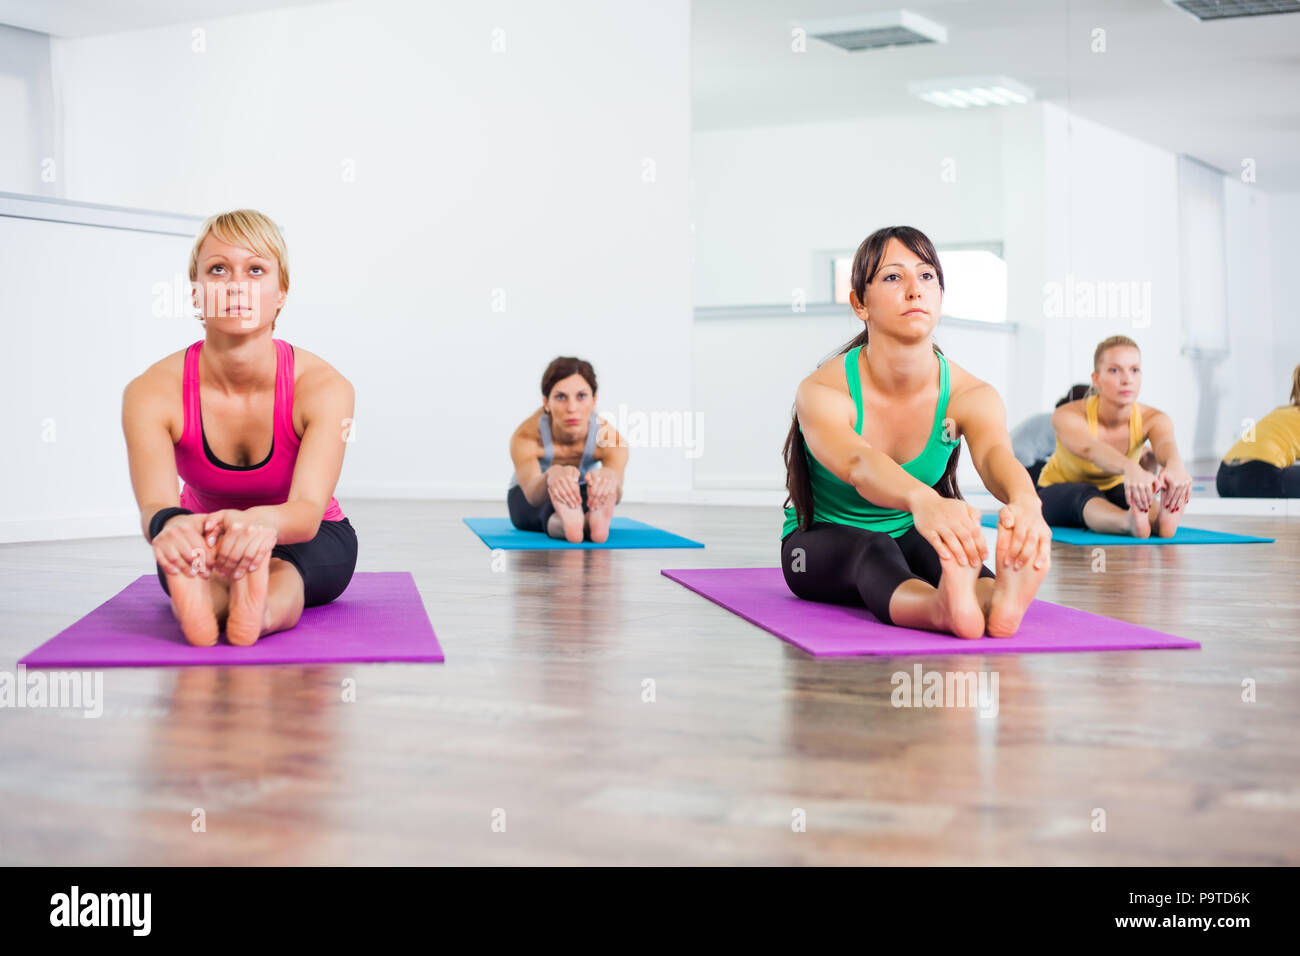 Four girls practicing yoga, Pascimottanasana / Seated Forward Bend pose - Stock Image